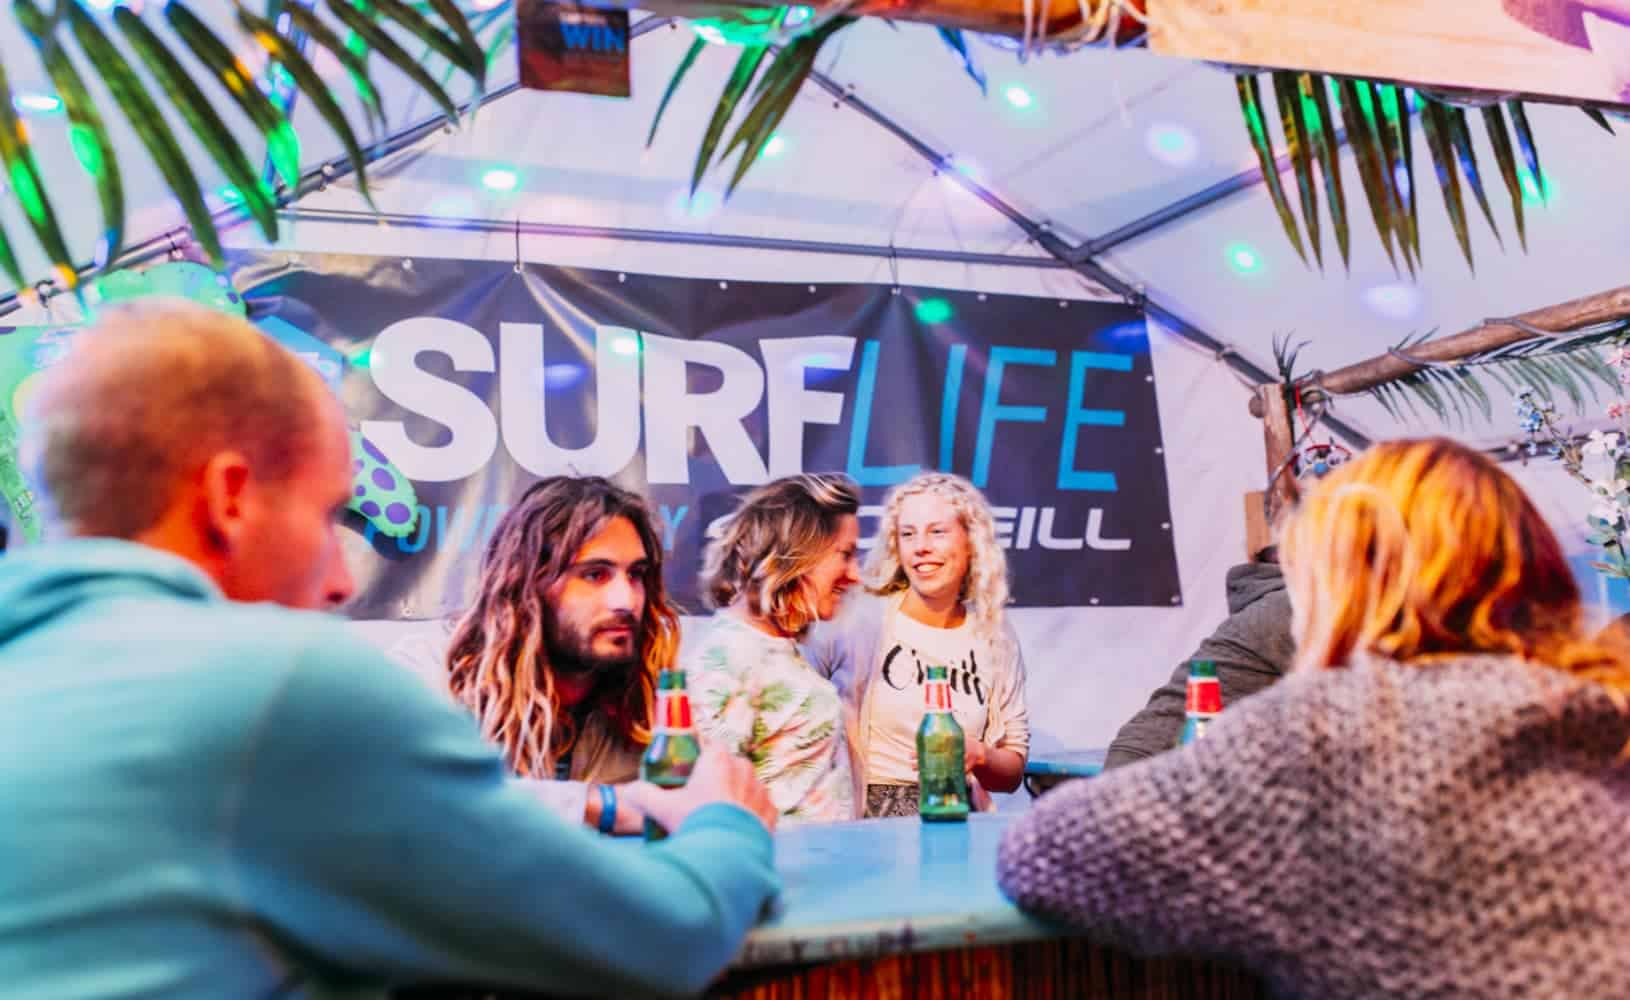 France O'Neill Surflife bar